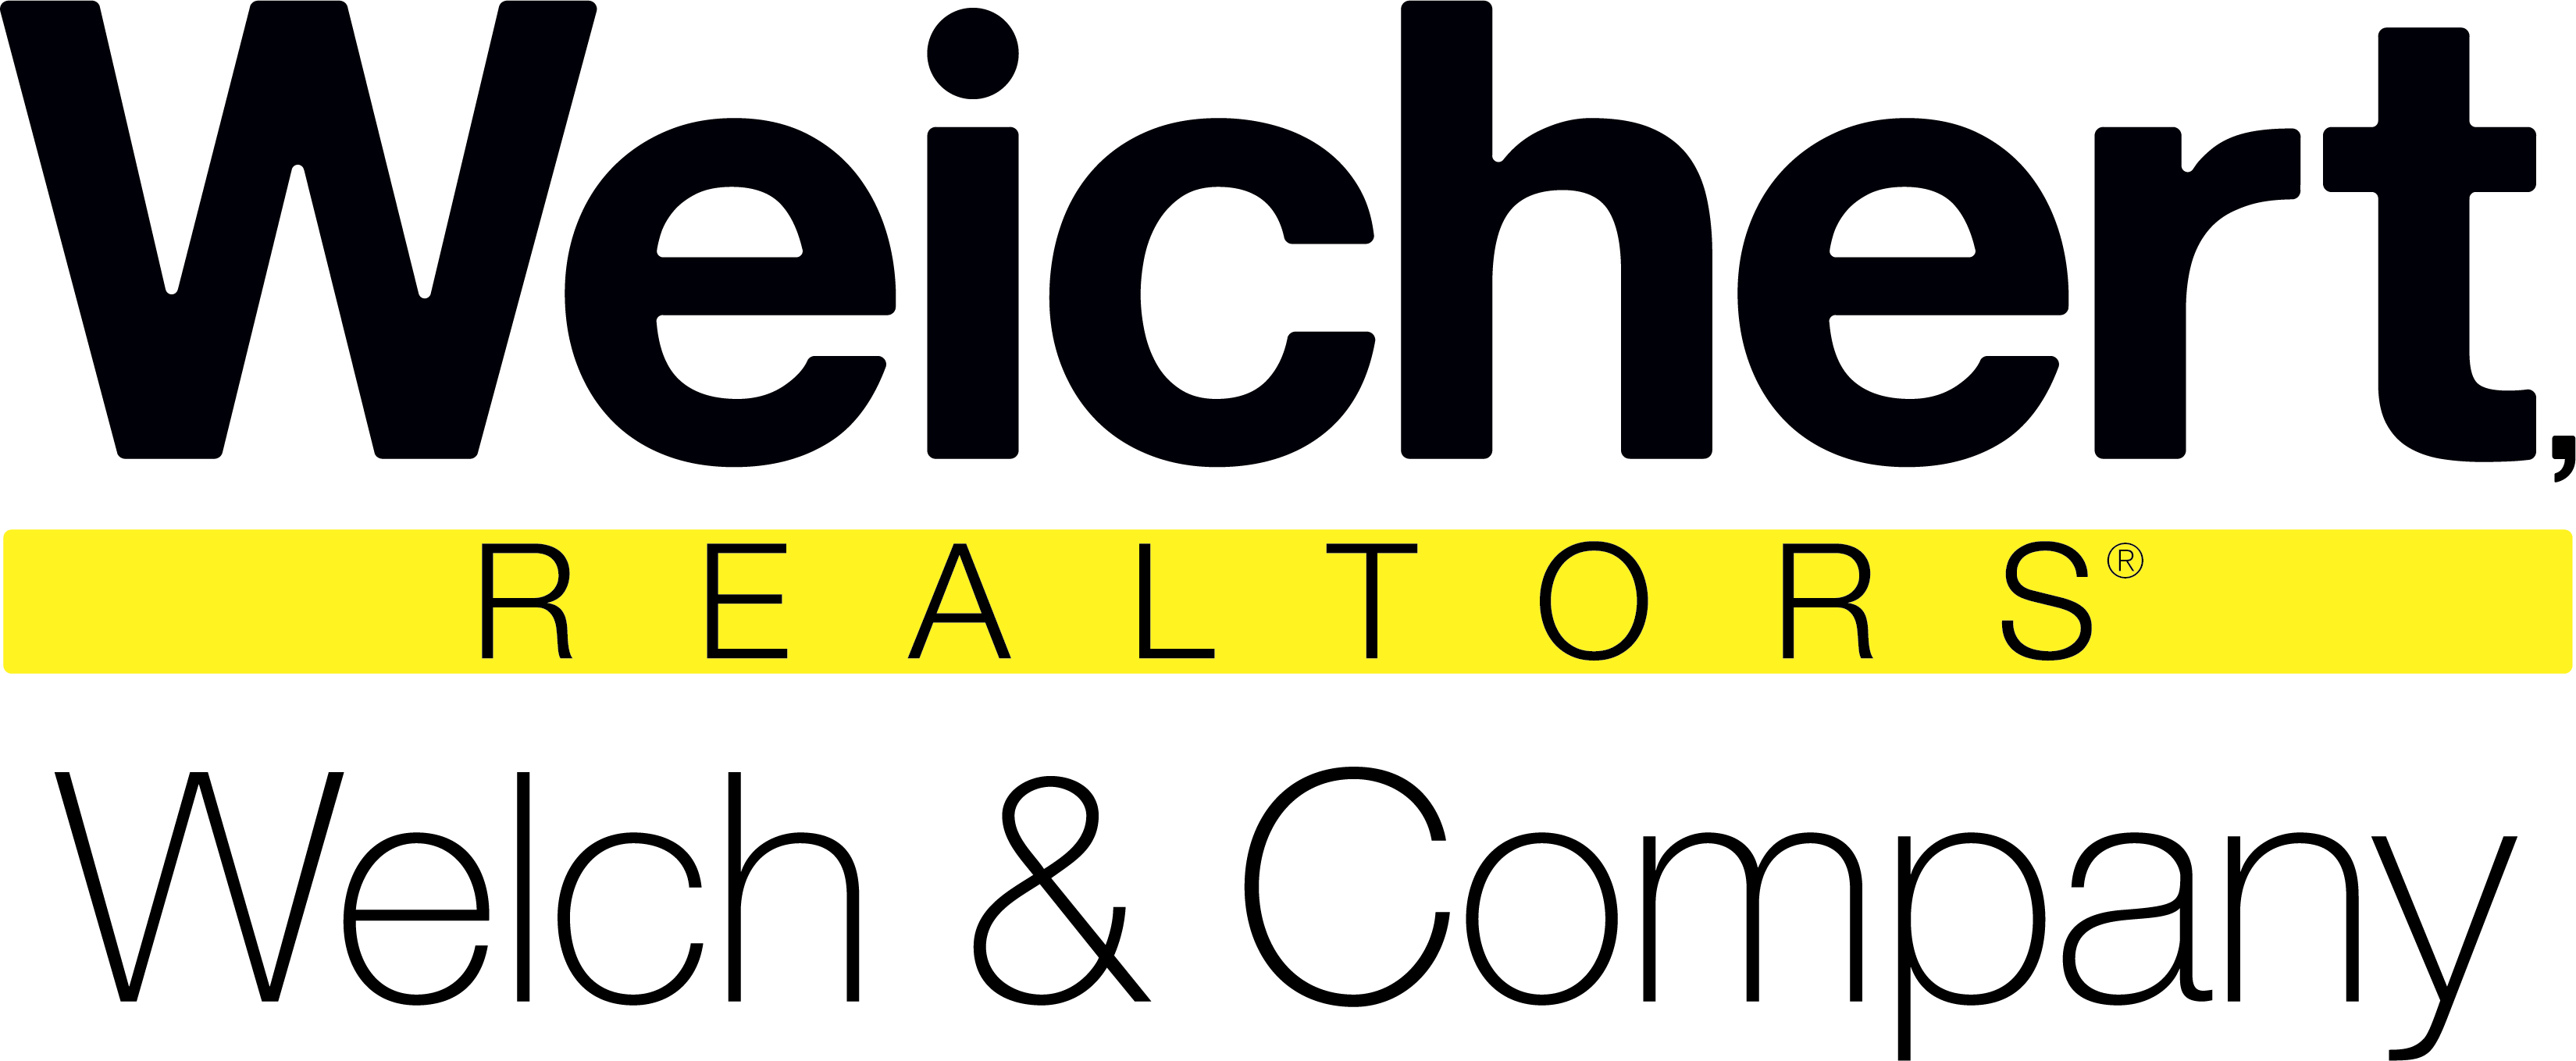 Weichert Realtors Welch and Associates Logo